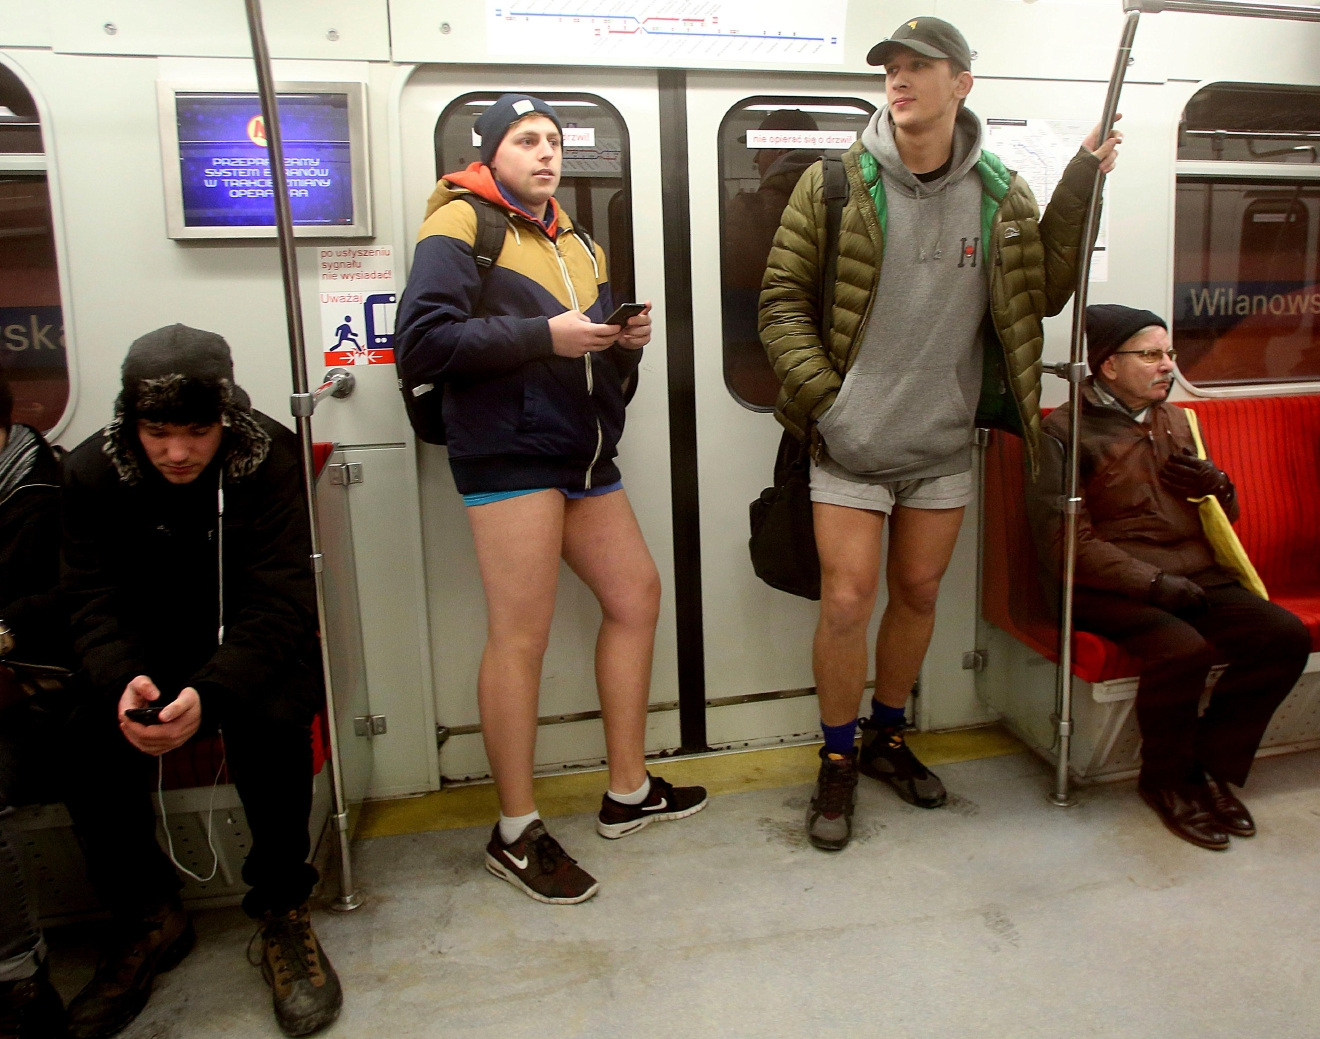 Young people riding on the subway with no pants on as they join a global happening in Warsaw, Poland, Sunday, Jan. 8, 2017, amid freezing winter weather outside. (AP Photo/Czarek Sokolowski)